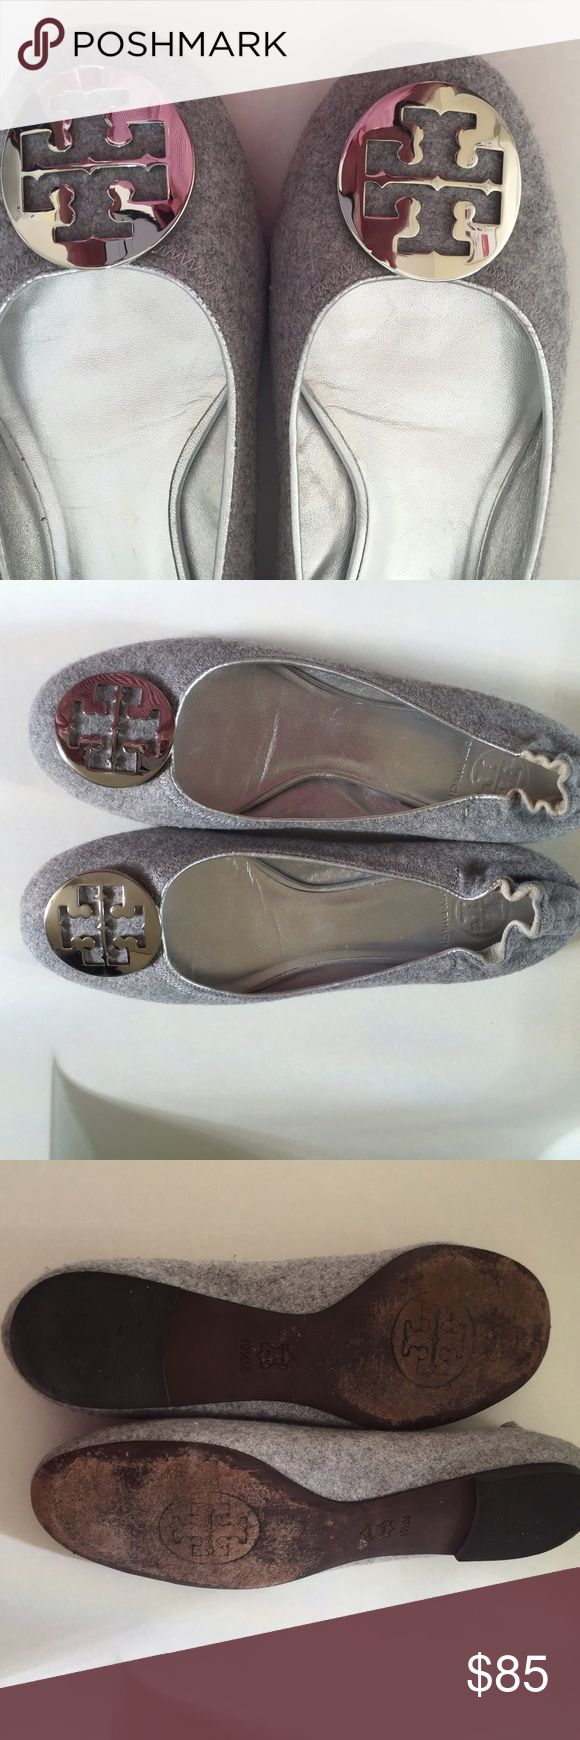 Tony Burch Suede Silver Reva Ballet Shoes 10.5 Tony Burch Reva Silver Ballet Flats with Silver Leather Trim. Very Nice Condition Size is 10.5 Tony Burch  Shoes Flats & Loafers